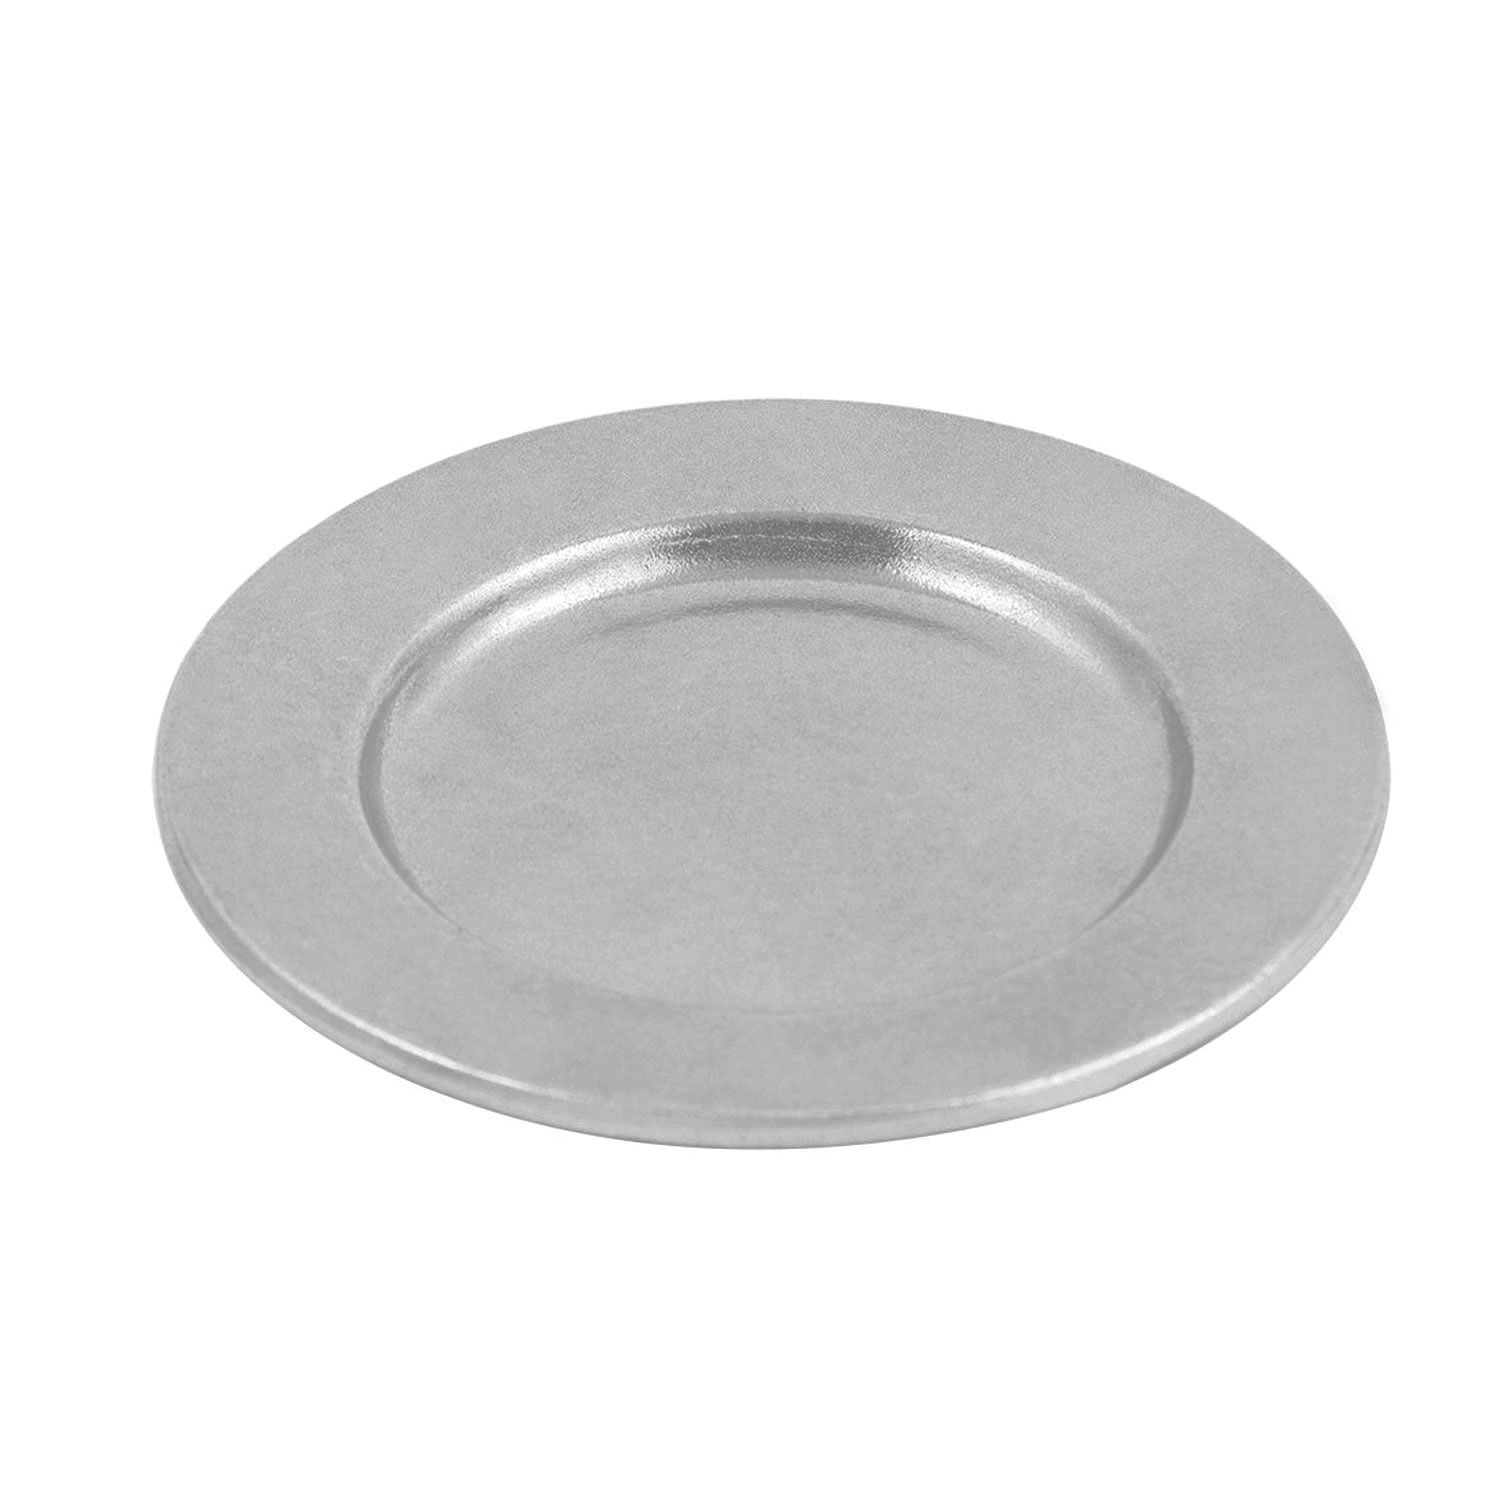 inch contemporary dinner plate pewter glo  ct  dinnerware  -   inch contemporary dinner plate pewter glo  ct